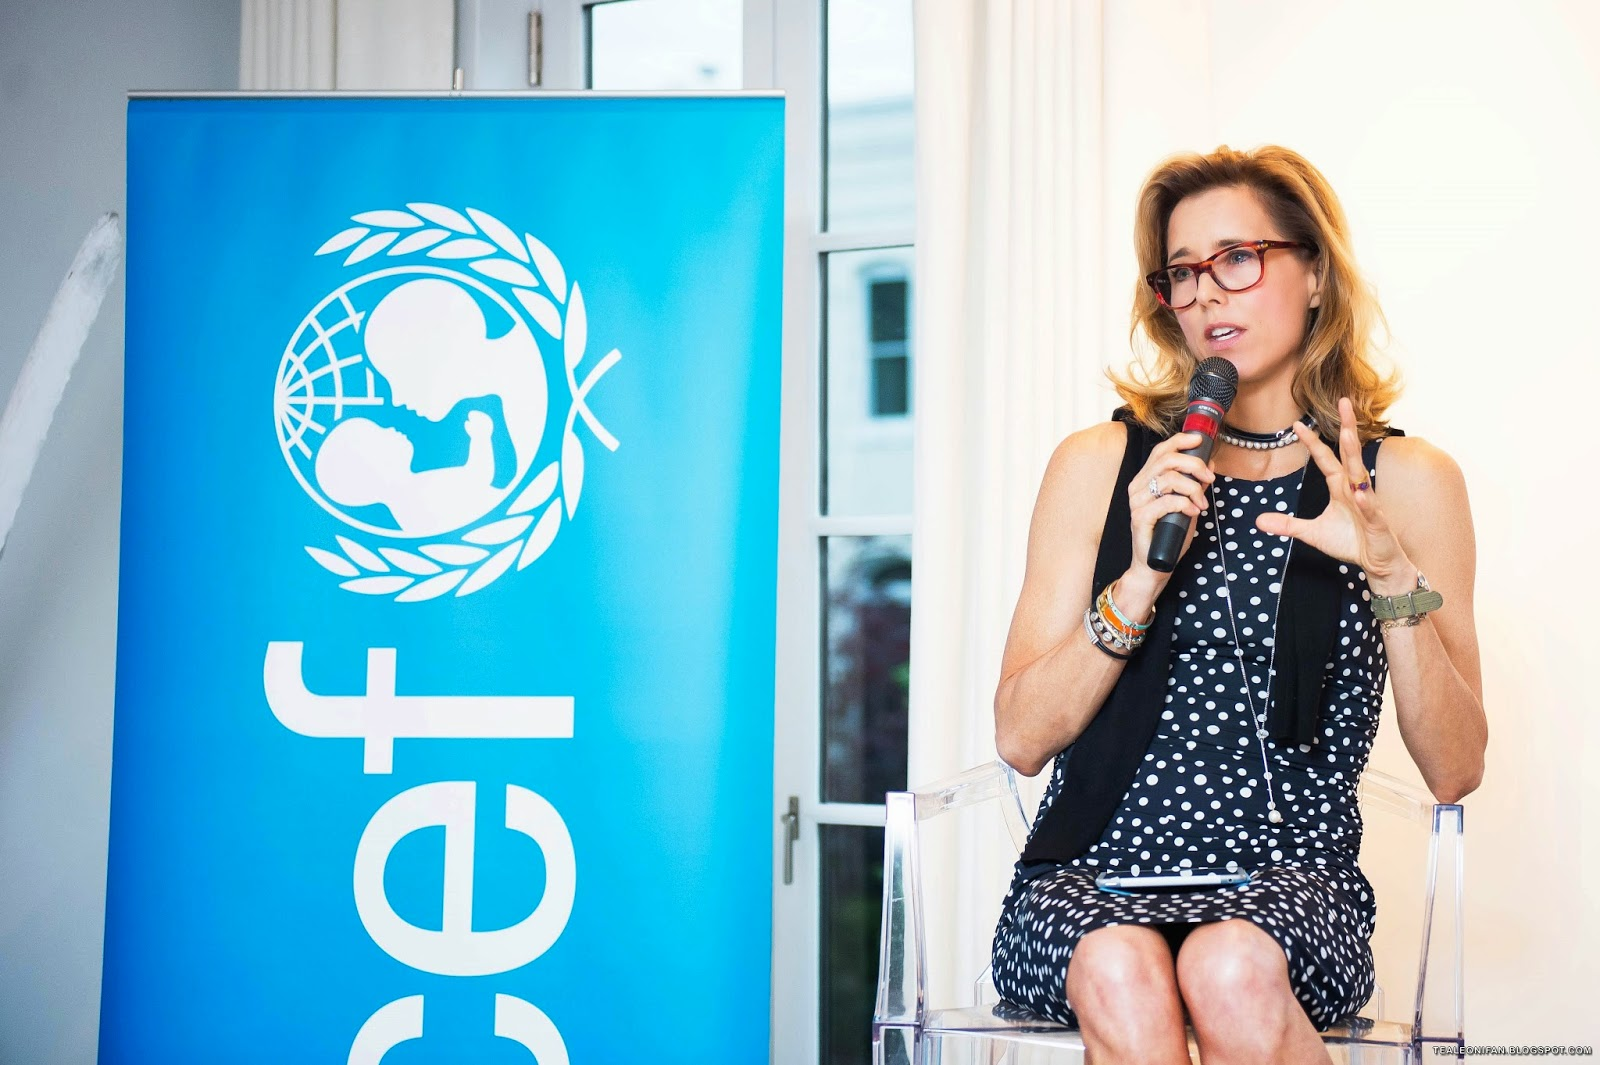 Téa Leoni, UNICEF ambassador and U.S. Fund for UNICEF national board member, speaks about the crisis in Syria in Washington (Courtesy of UNICEF)